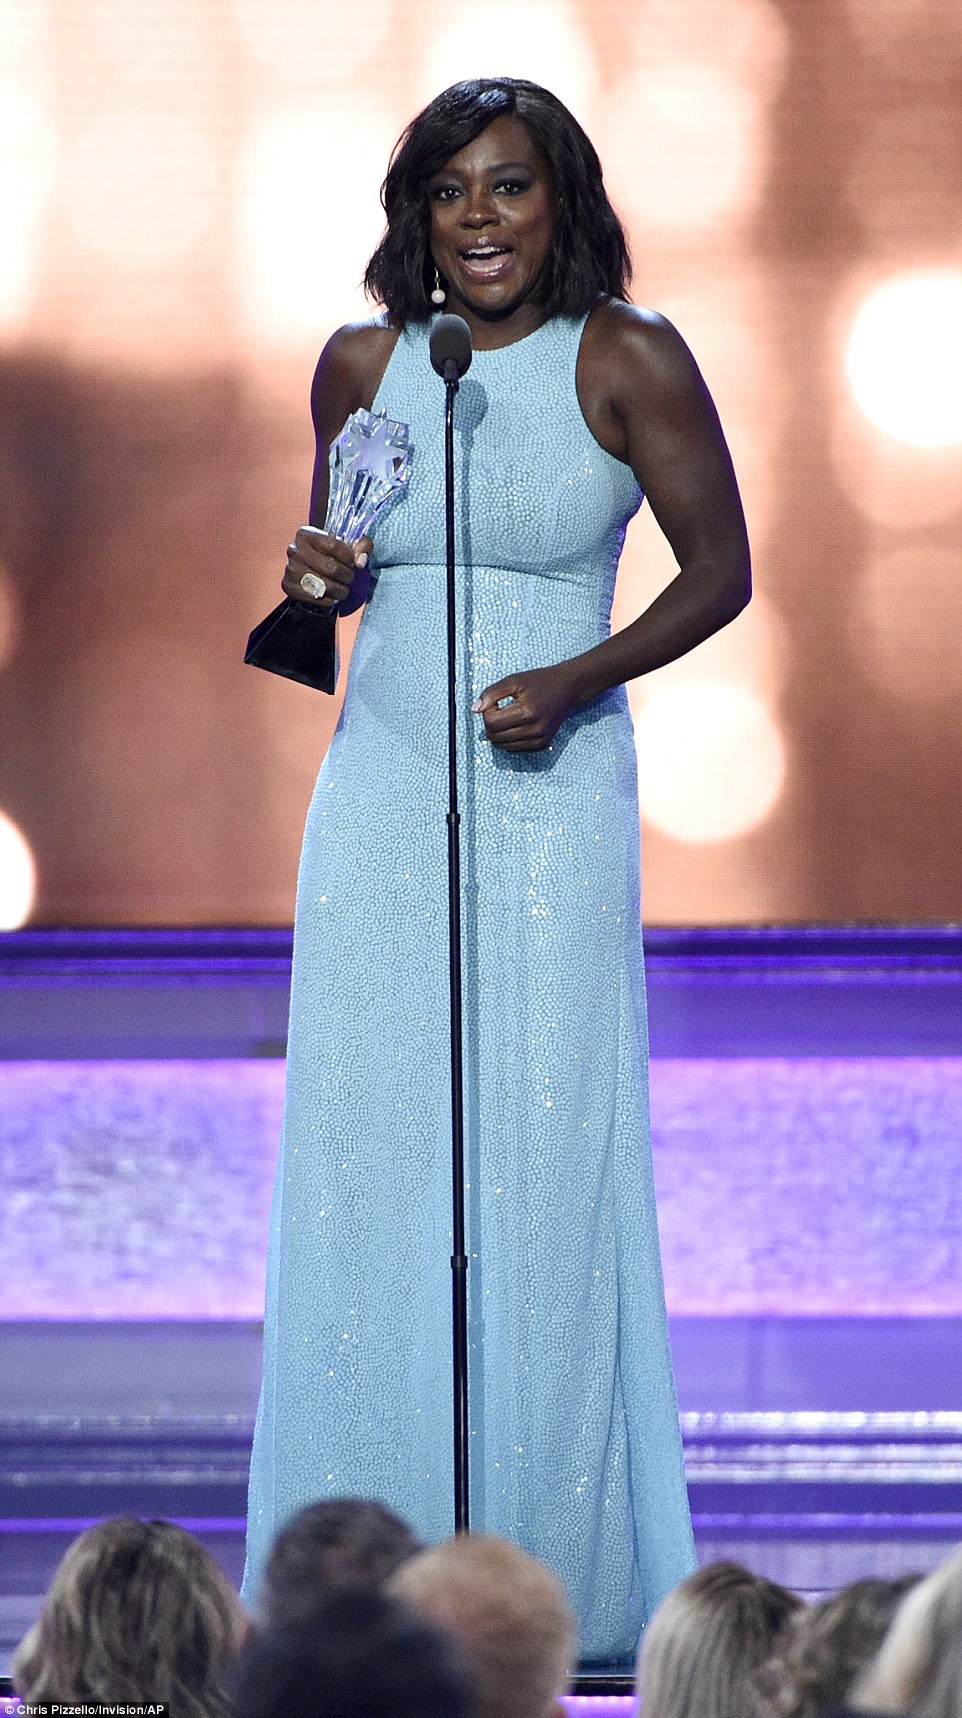 Sense of humor:She also began the acceptance speech by joking: 'Thank you. It's hard to accept being a role model for women when you're trying to lose weight.'